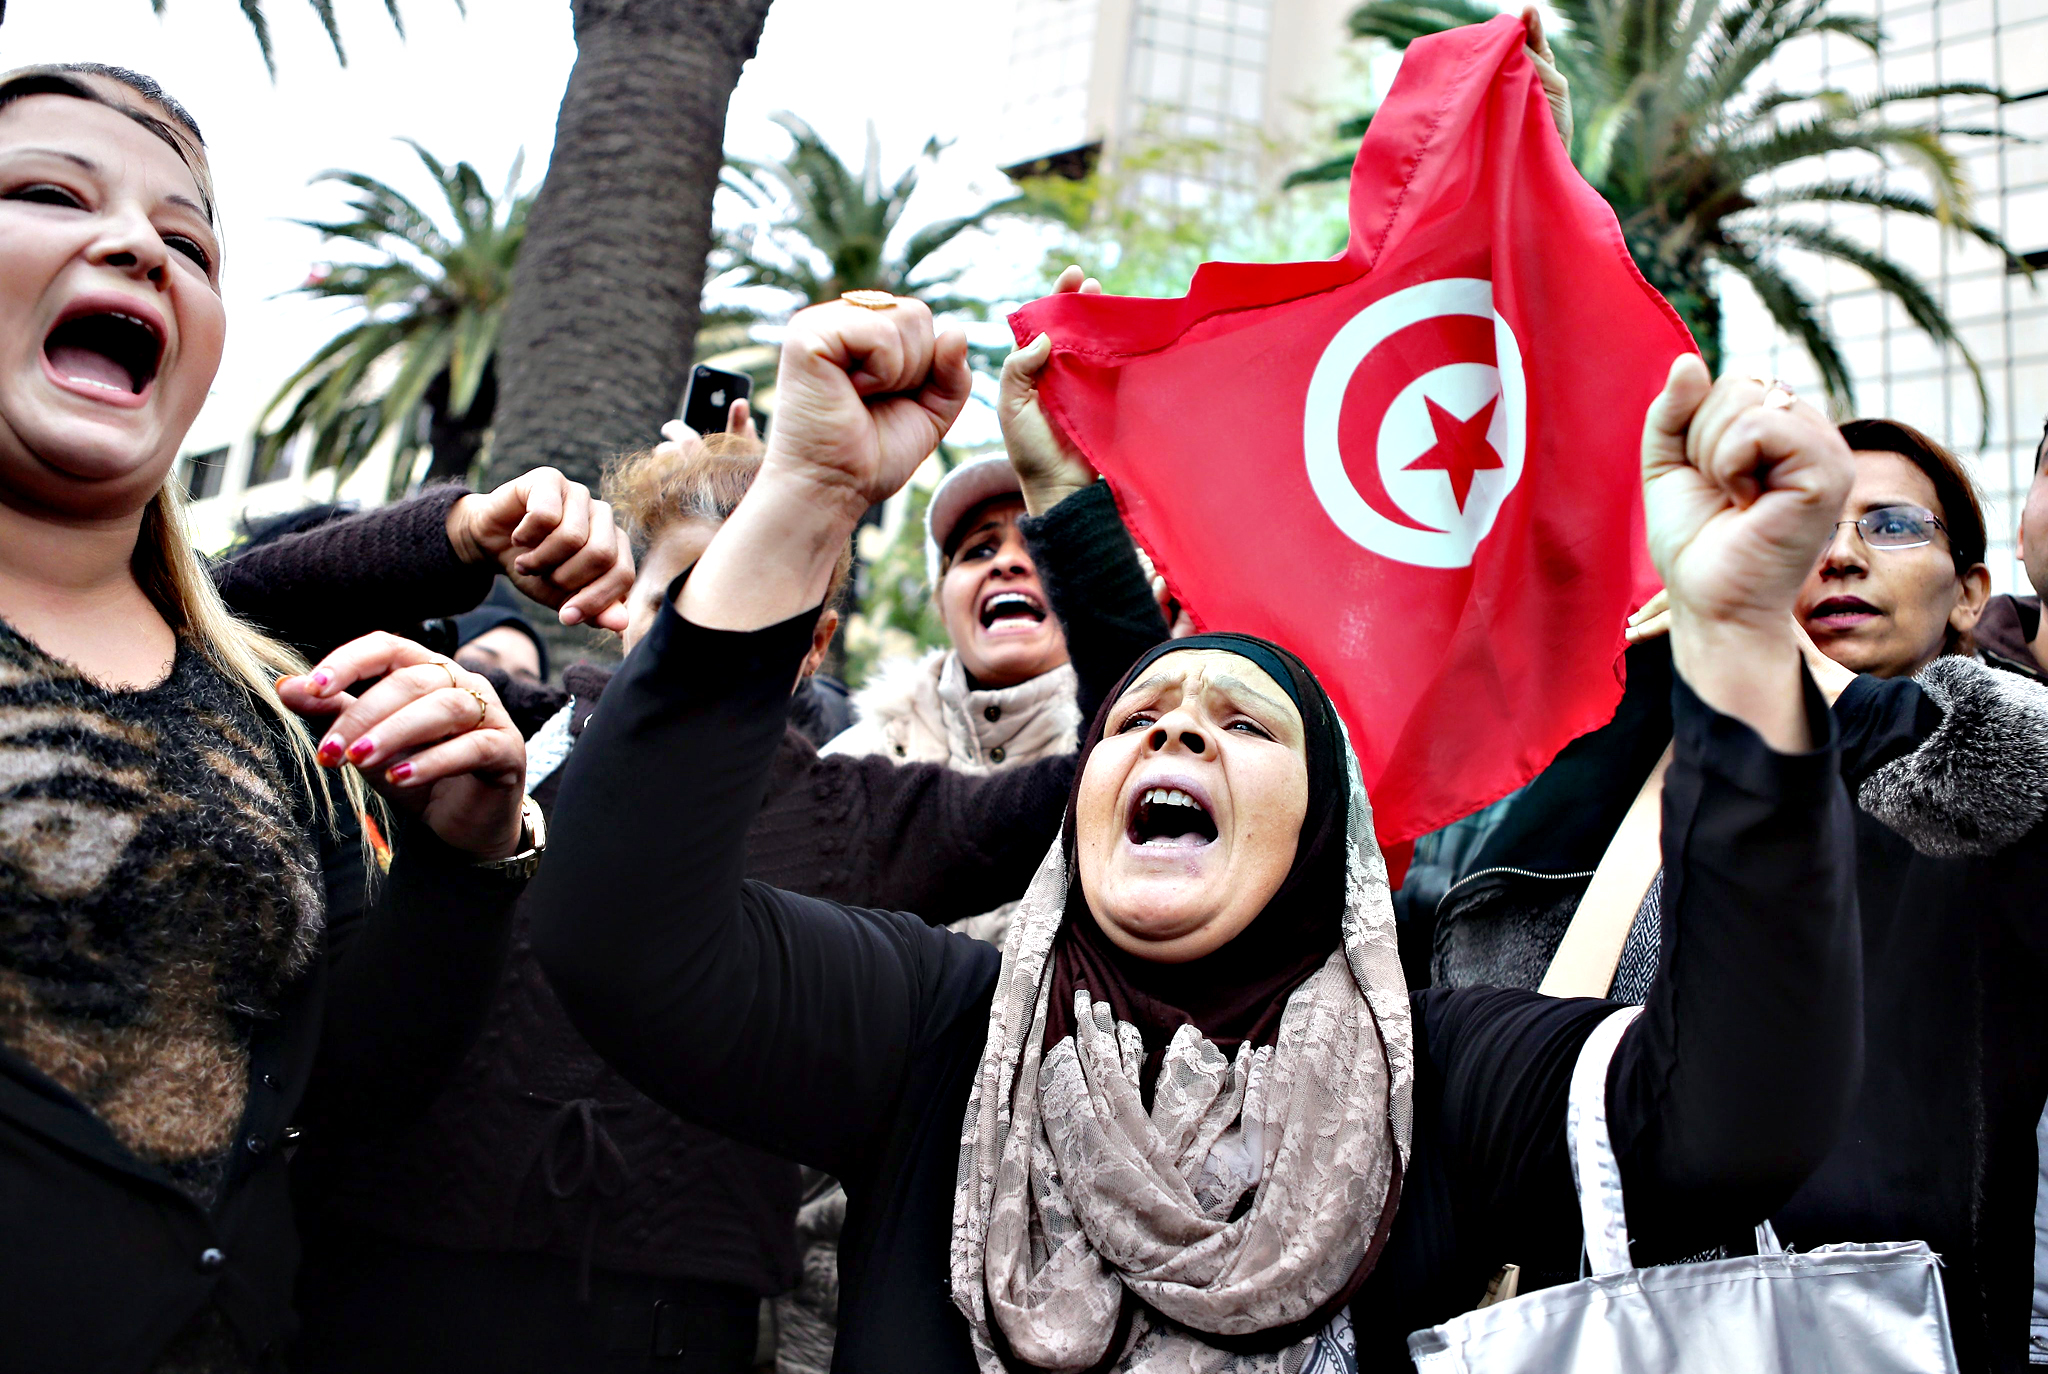 Tunisians shout slogans and hold Tunisian flags during a demonstration in solidarity with victims of a bomb attack on a bus transporting Tunisian presidential guards a day earlier, in Tunis, Tunisia, on Wednesday. Tunisian Prime Minister Habib Essid warned that his government would strictly enforce a curfew and anti-terrorism measures after 12 presidential guards were killed in a bombing on 24 November. Investigators were examining a 13th corpse to determine whether it was that of a civilian victim or a suicide attacker. Officials have said they suspect the blast was a suicide bombing.